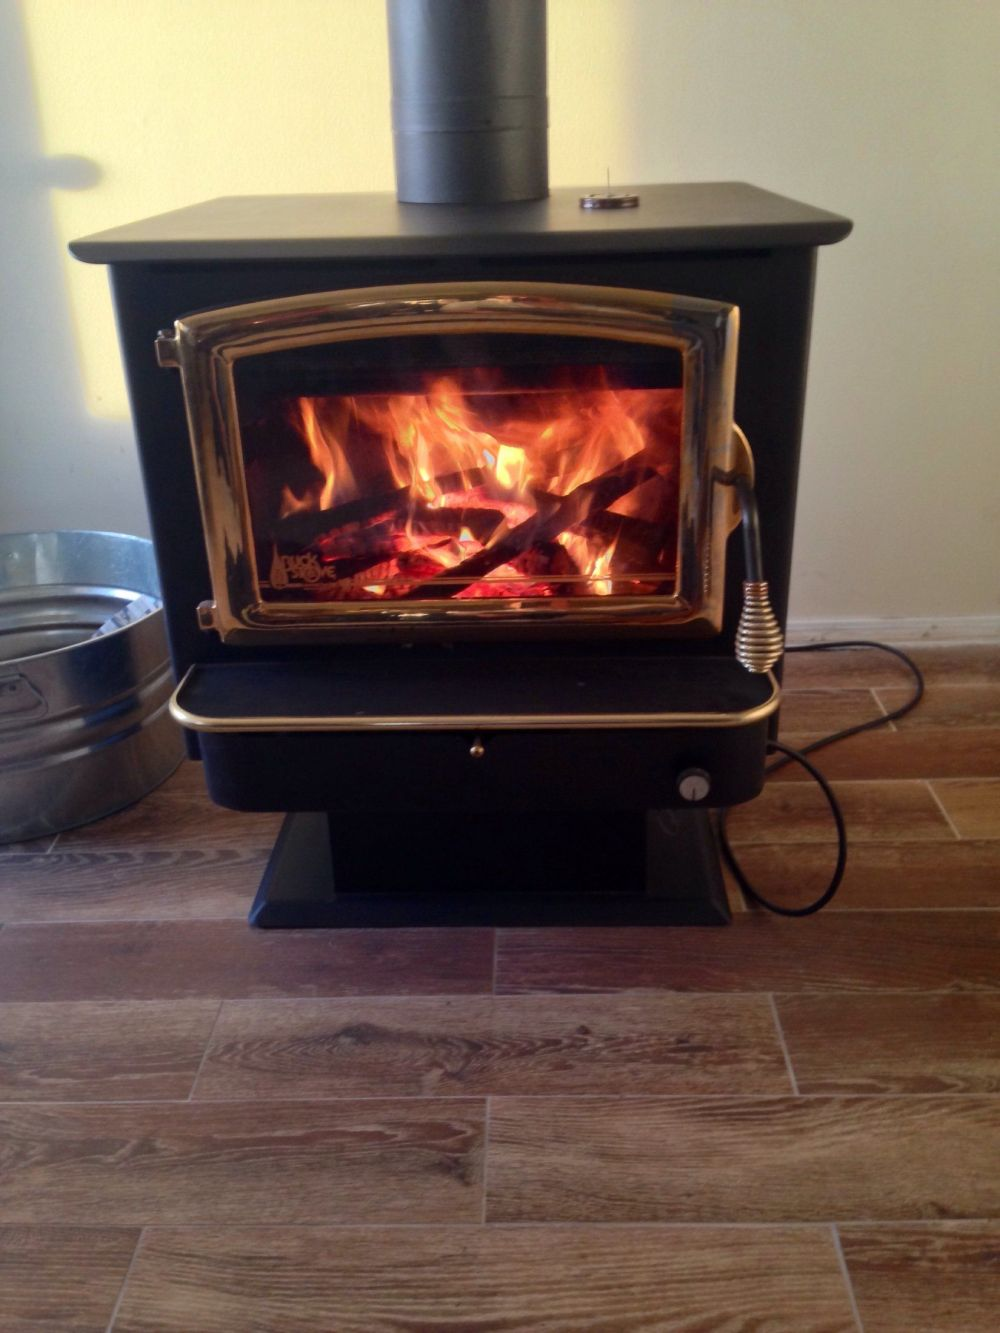 medium resolution of i was very impressed with my buck stove it produced the most impressive heat of any stove i ve had so far and i ve had a lot of new stoves